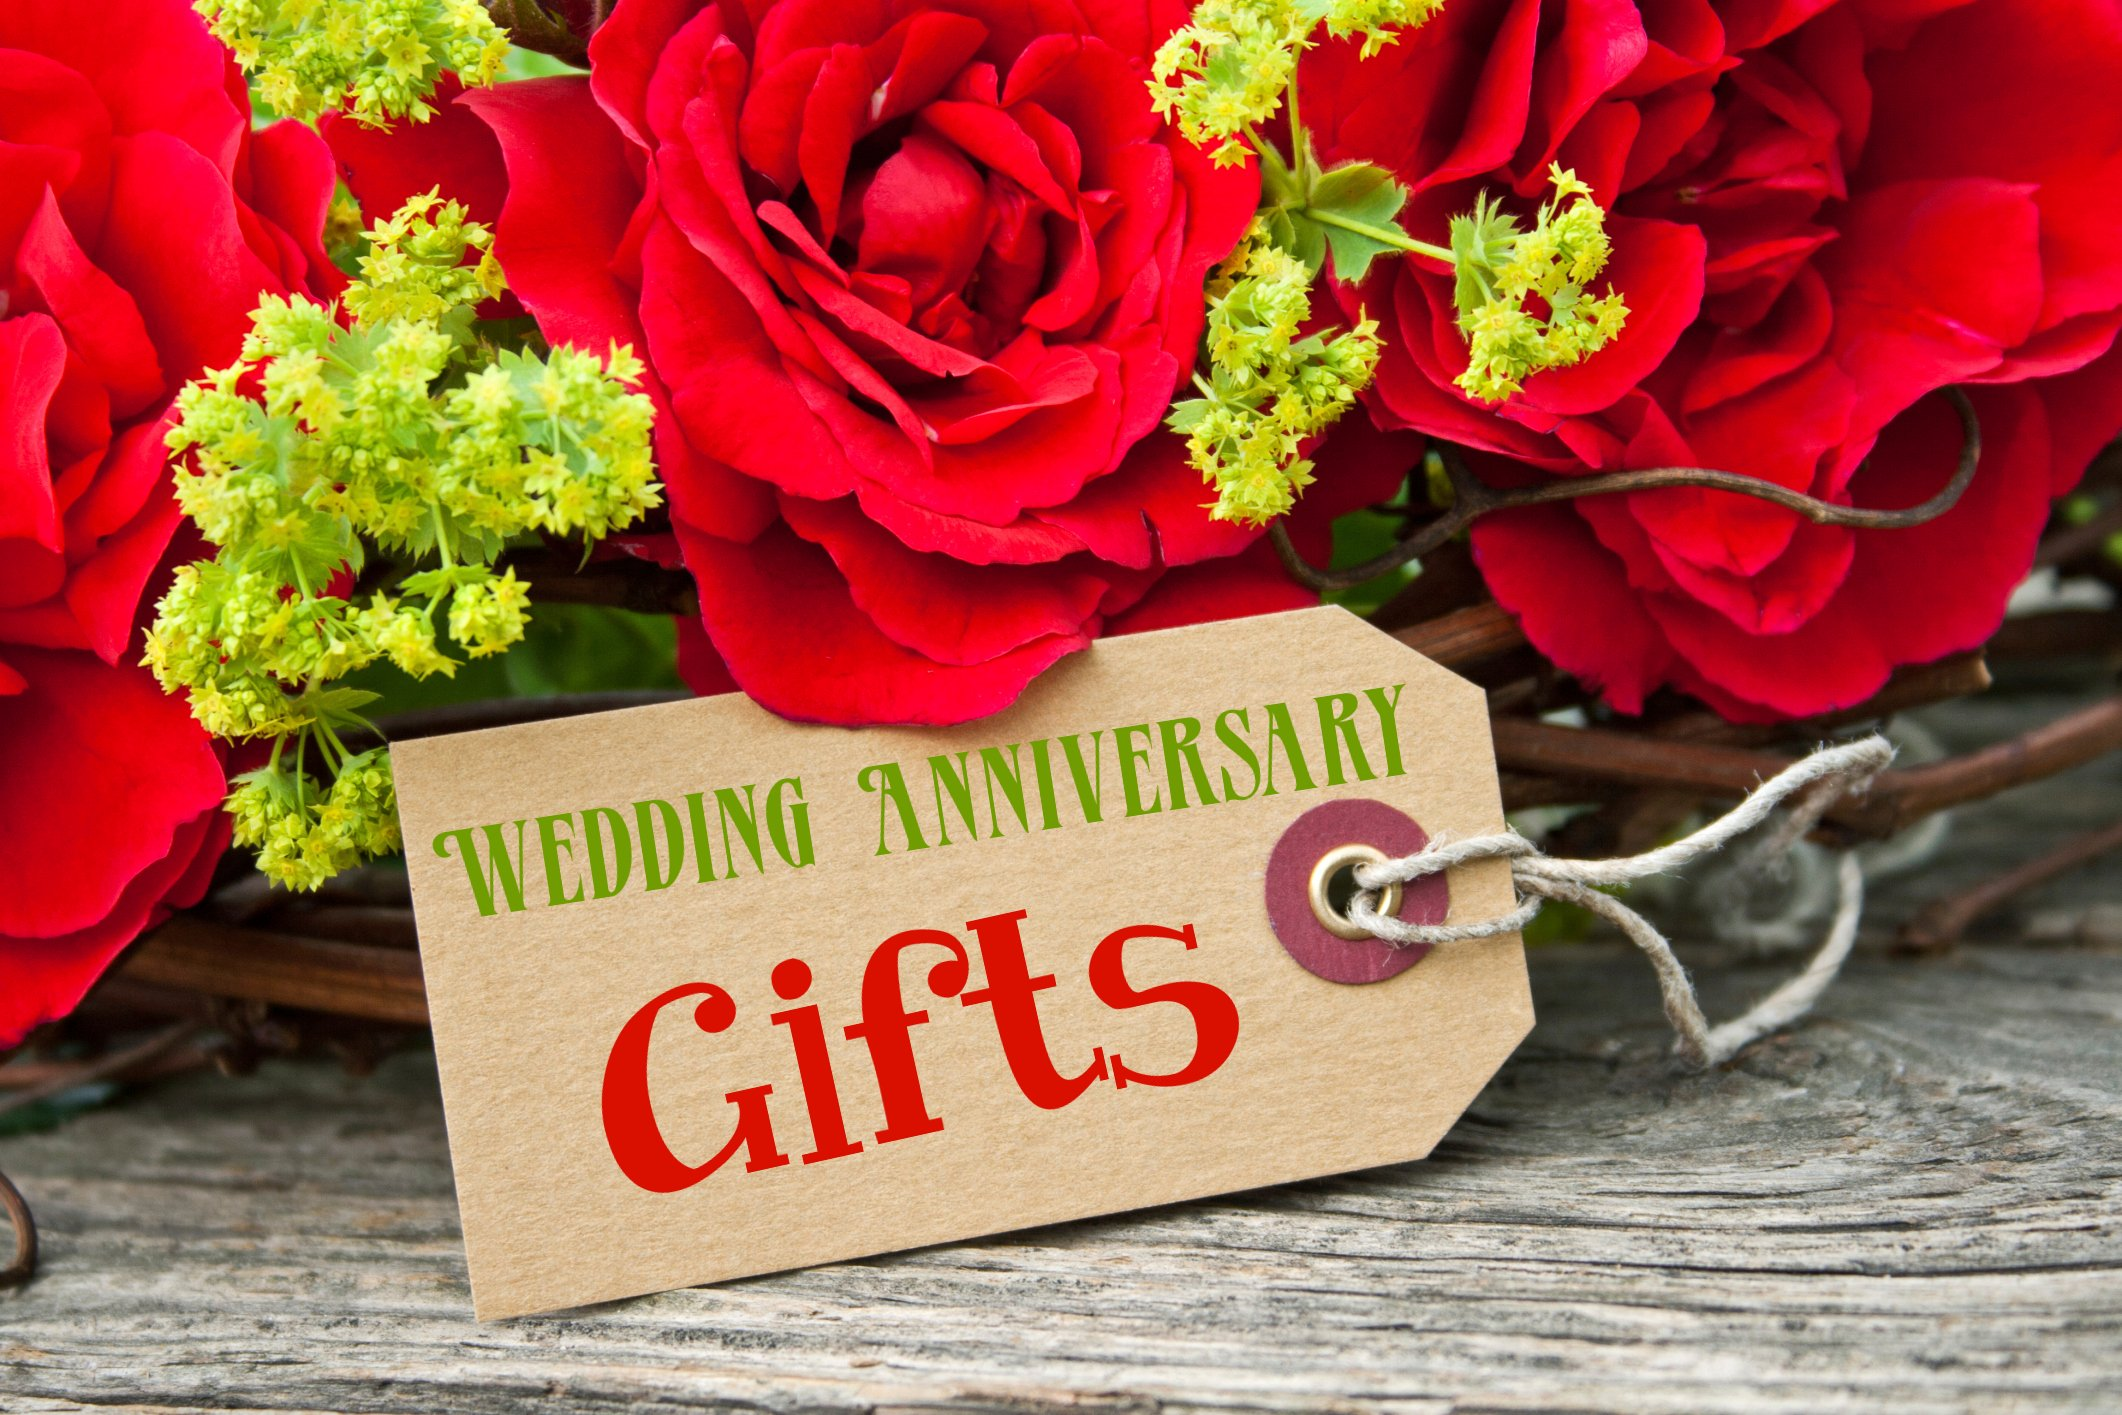 Traditional Wedding Anniversary Gifts Awol Granada A Wedding